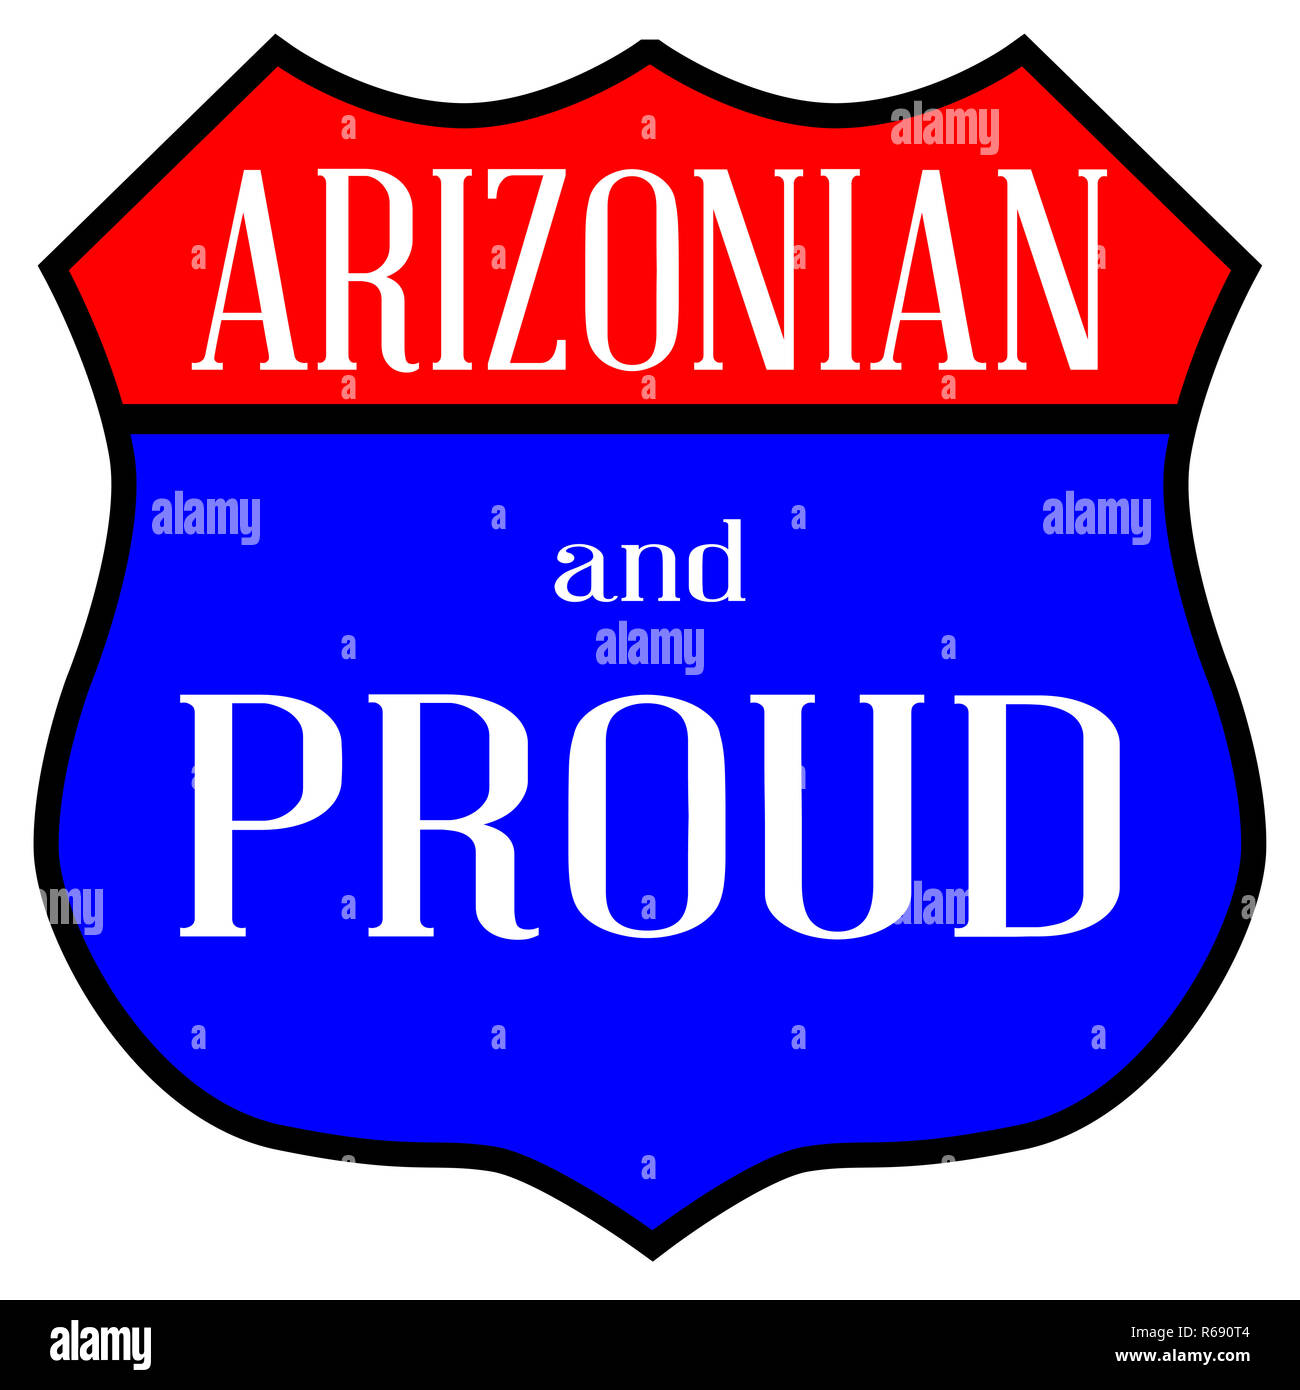 Arizonian And Proud Stock Photo: 227620964 - Alamy